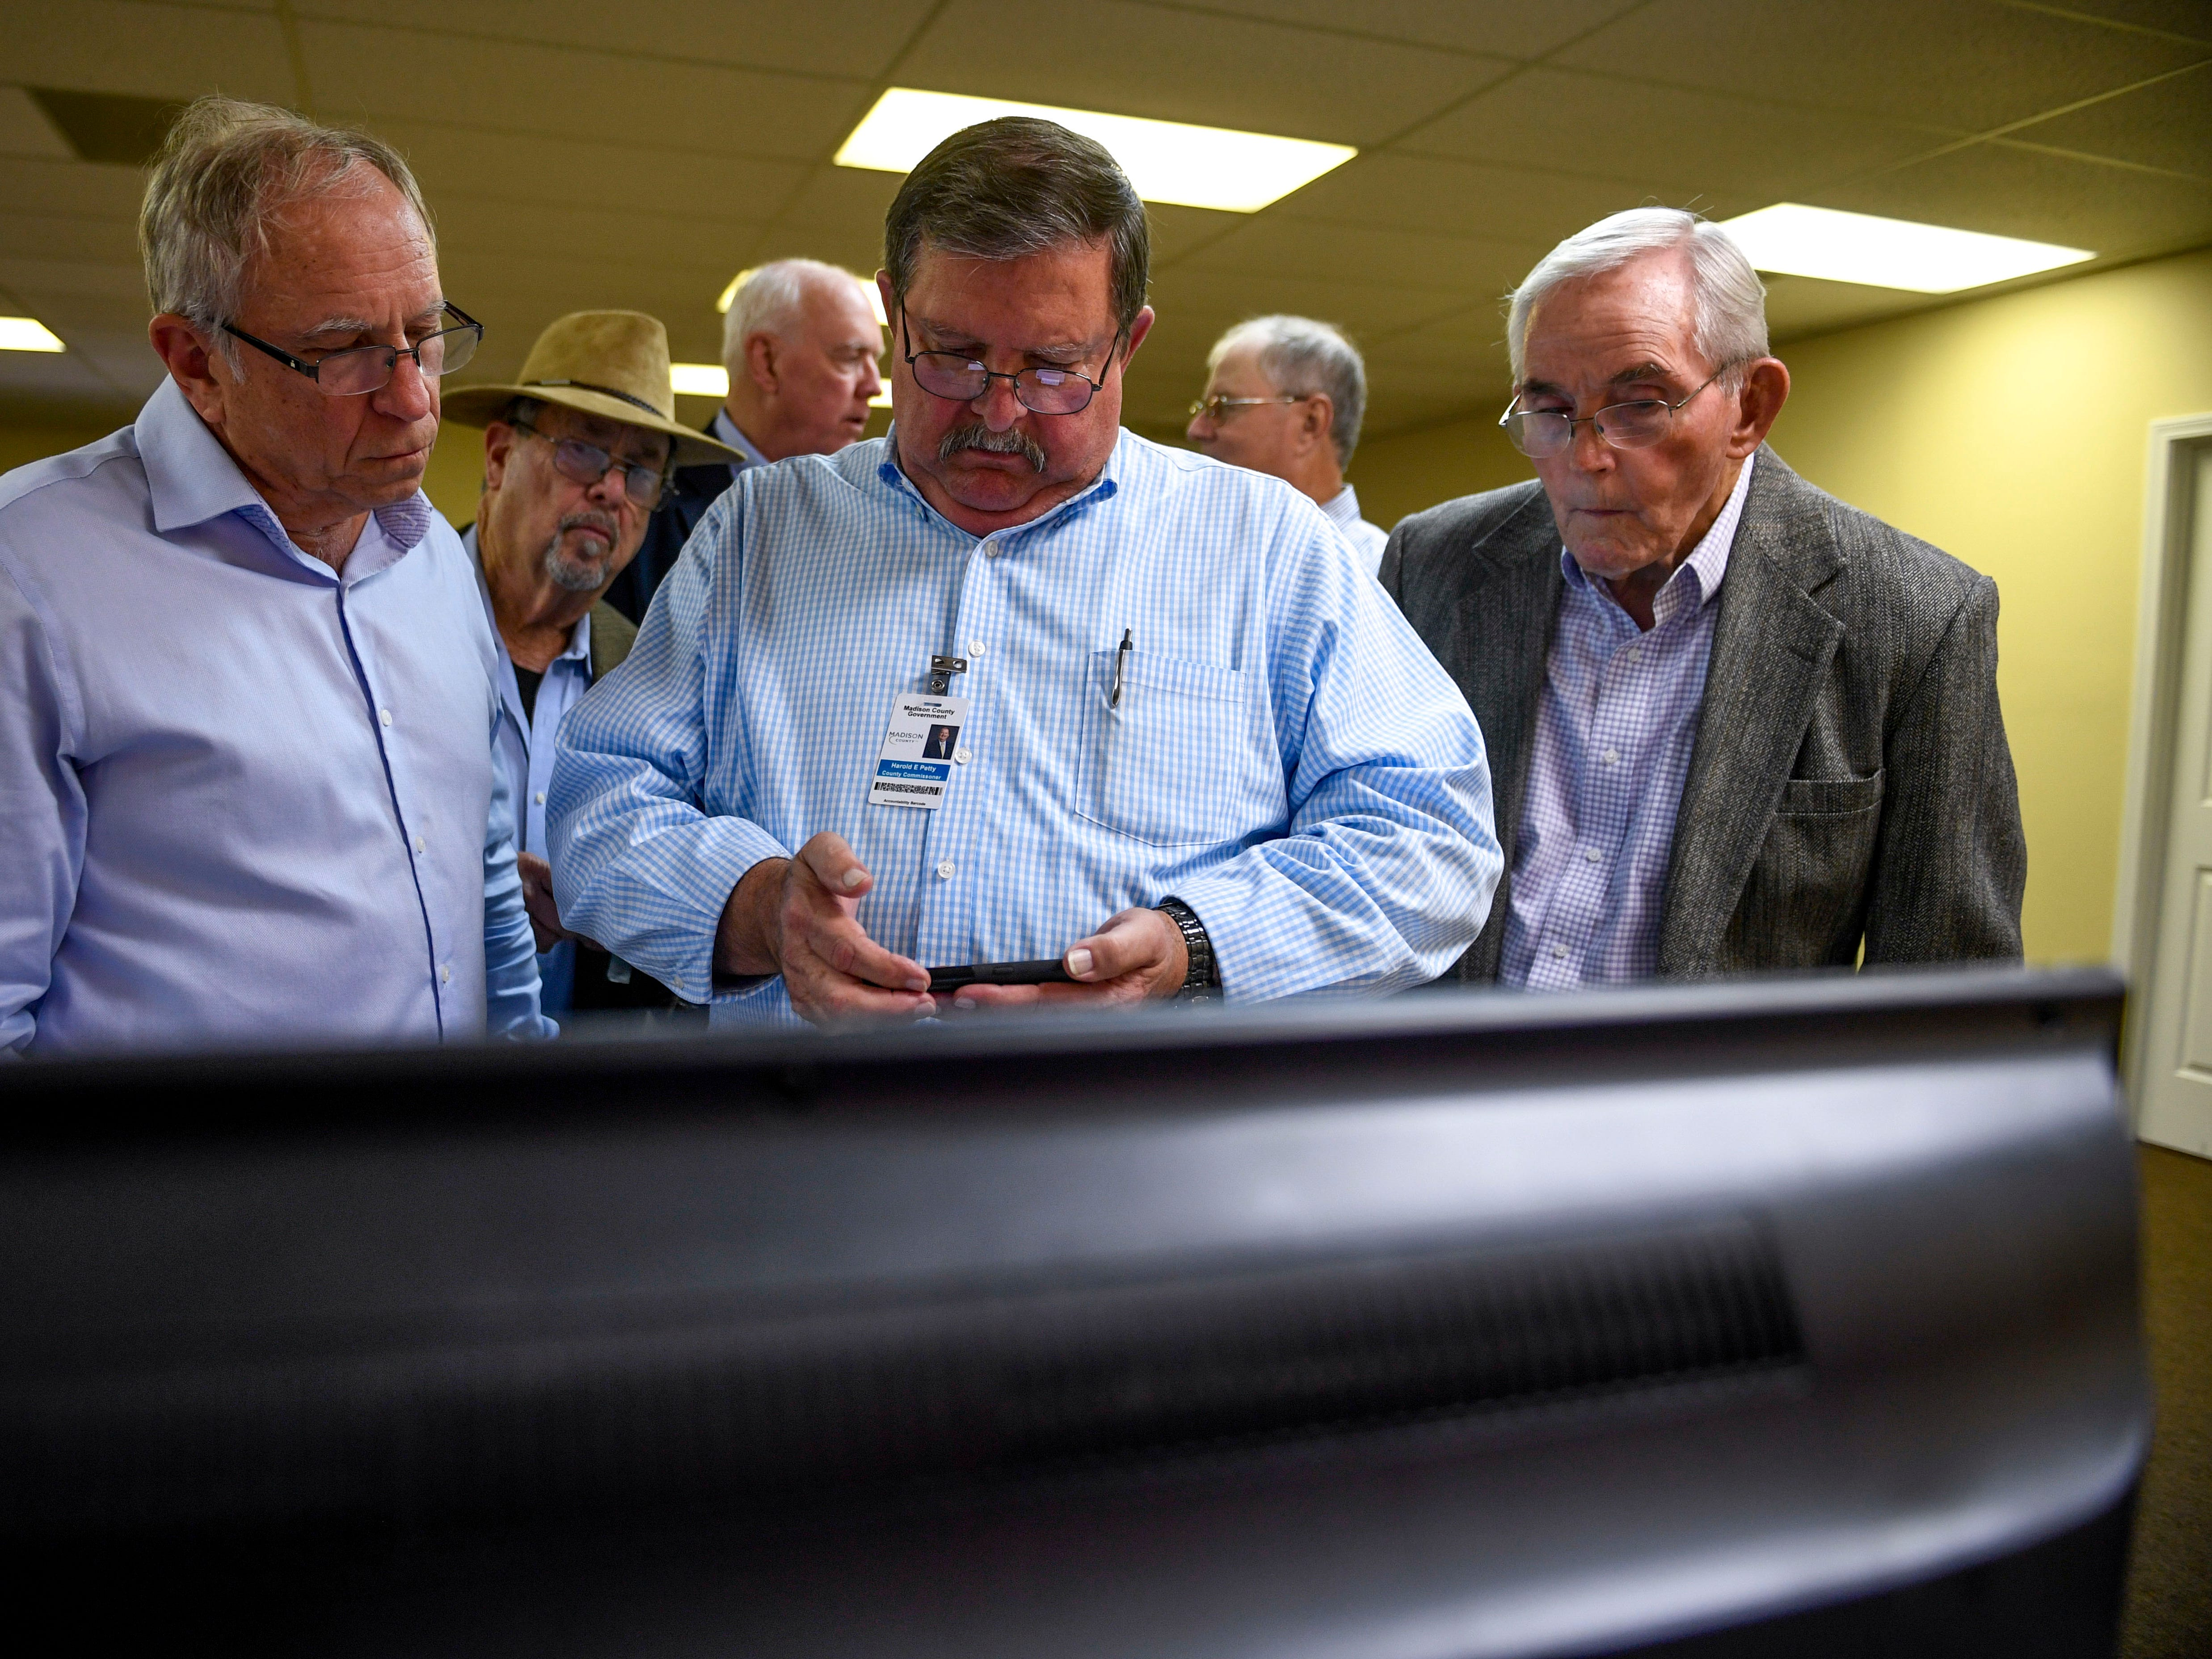 Attendees use their phones to track live election results while watching local television coverage during an election night watch party at Madison County Republican Headquarters in Jackson, Tenn., on Tuesday, Nov. 6, 2018.